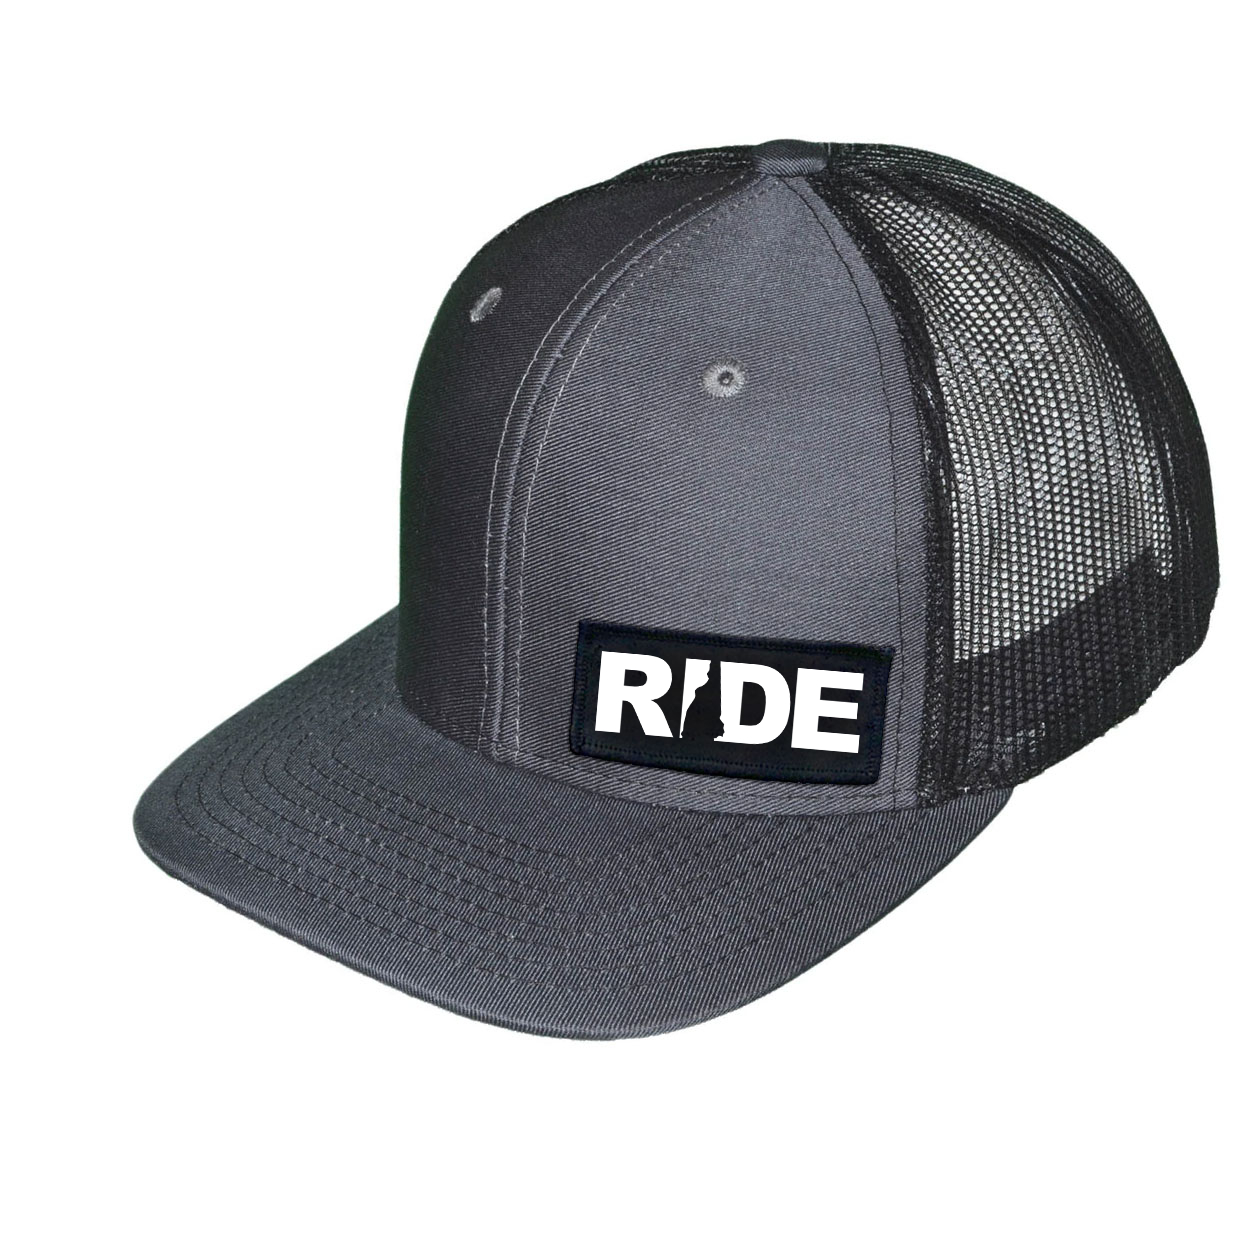 Ride New Hampshire Night Out Woven Patch Snapback Trucker Hat Dark Gray/Black (White Logo)